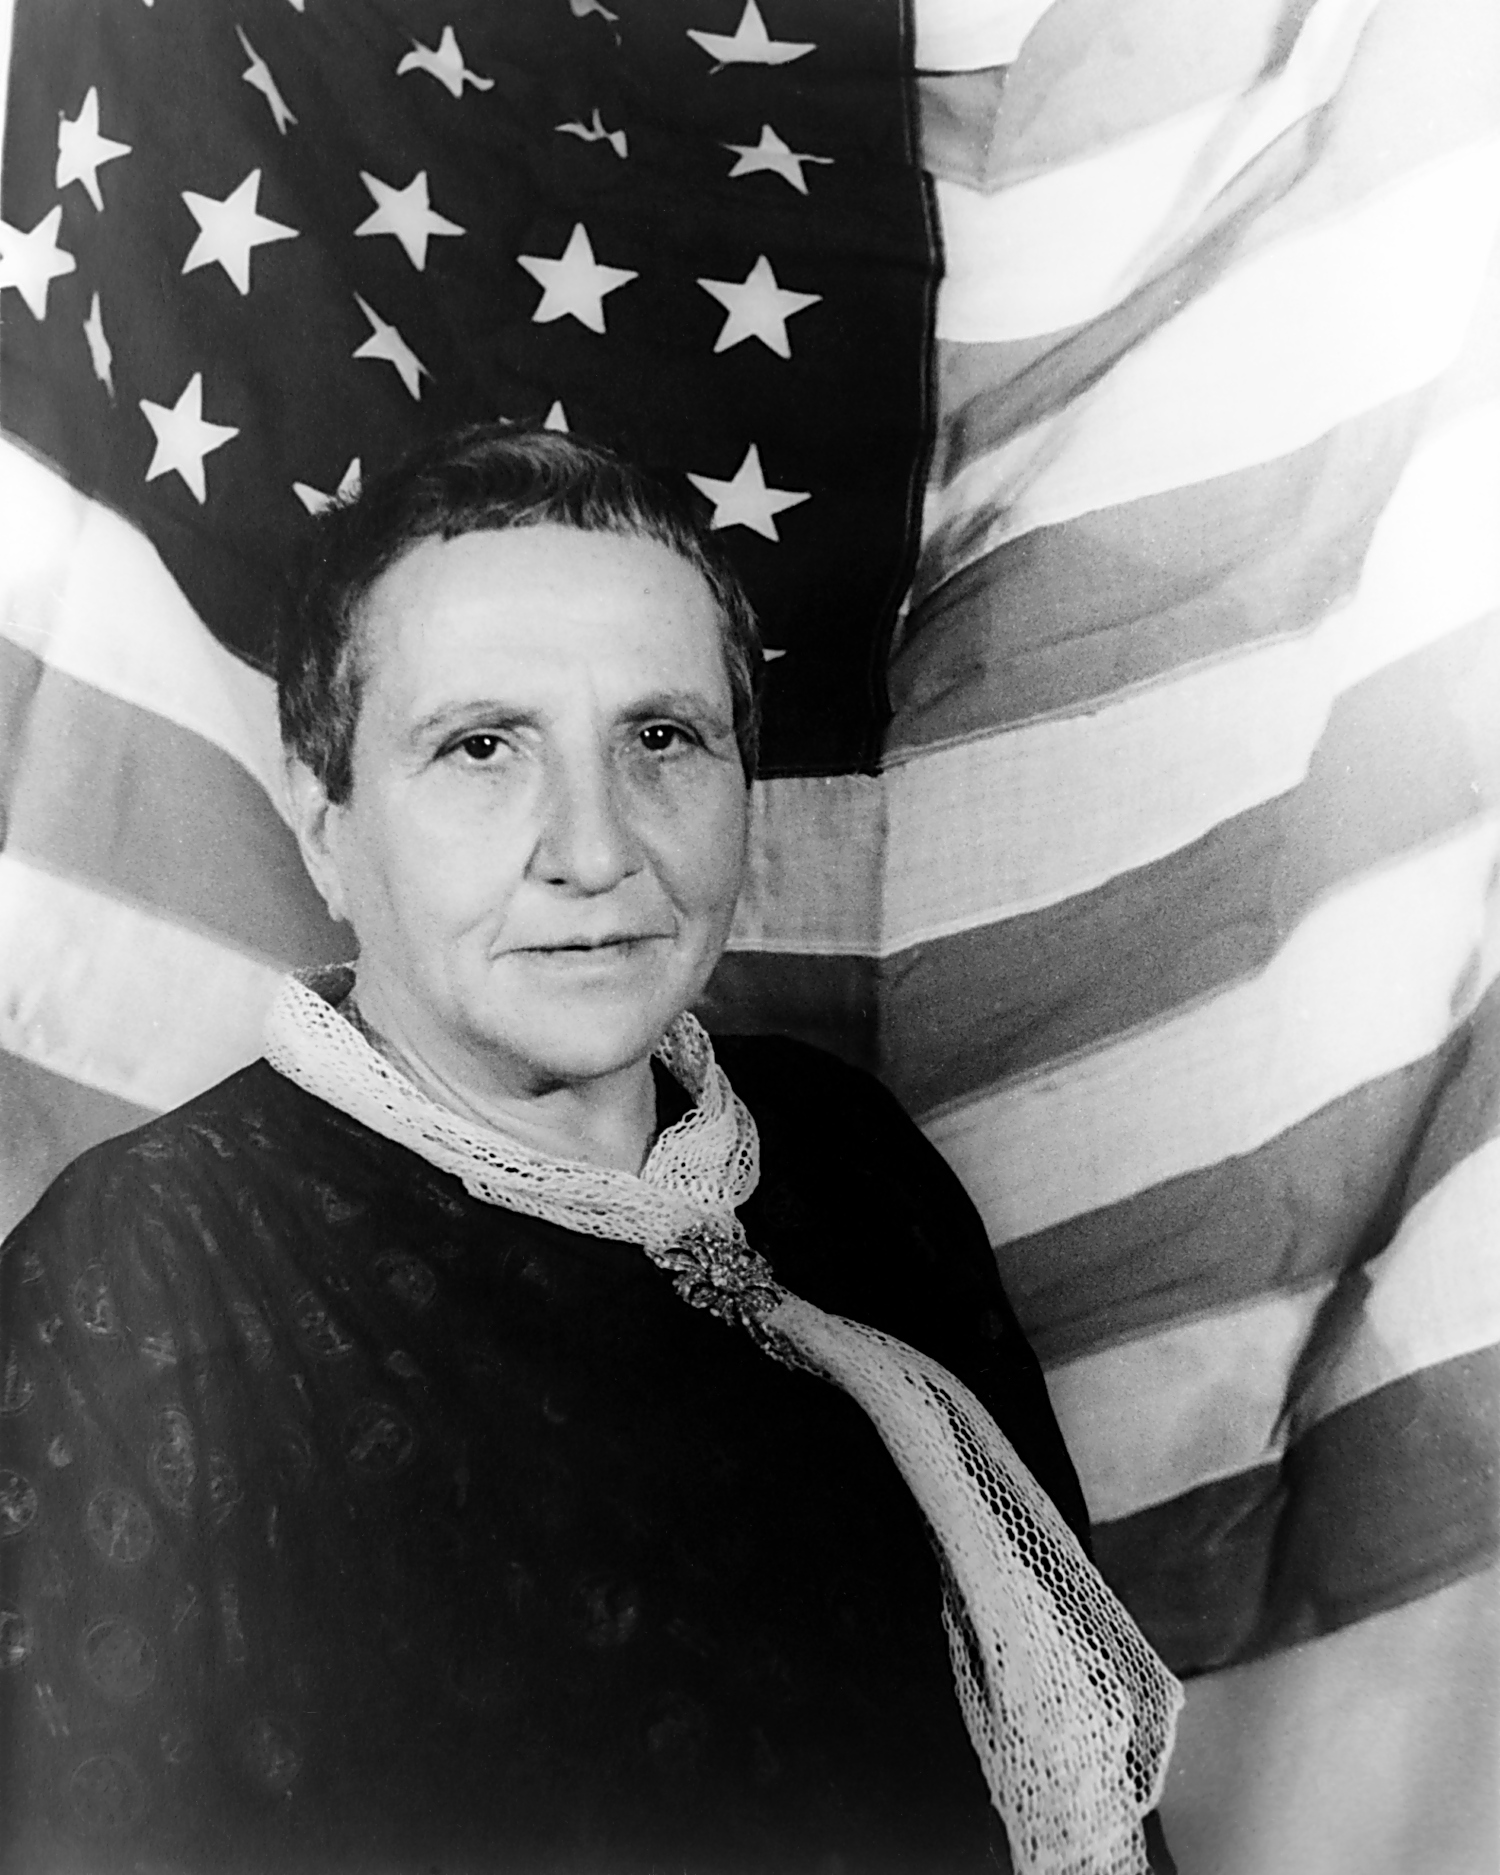 Gertrude Stein's works included 'The Making of Americans.' She also wrote 'Doctor Faustus Lights the Lights,' an electric tale of fate and folly, on stage this month at Pitt. (photo: Carl Van Vechten, 1935)